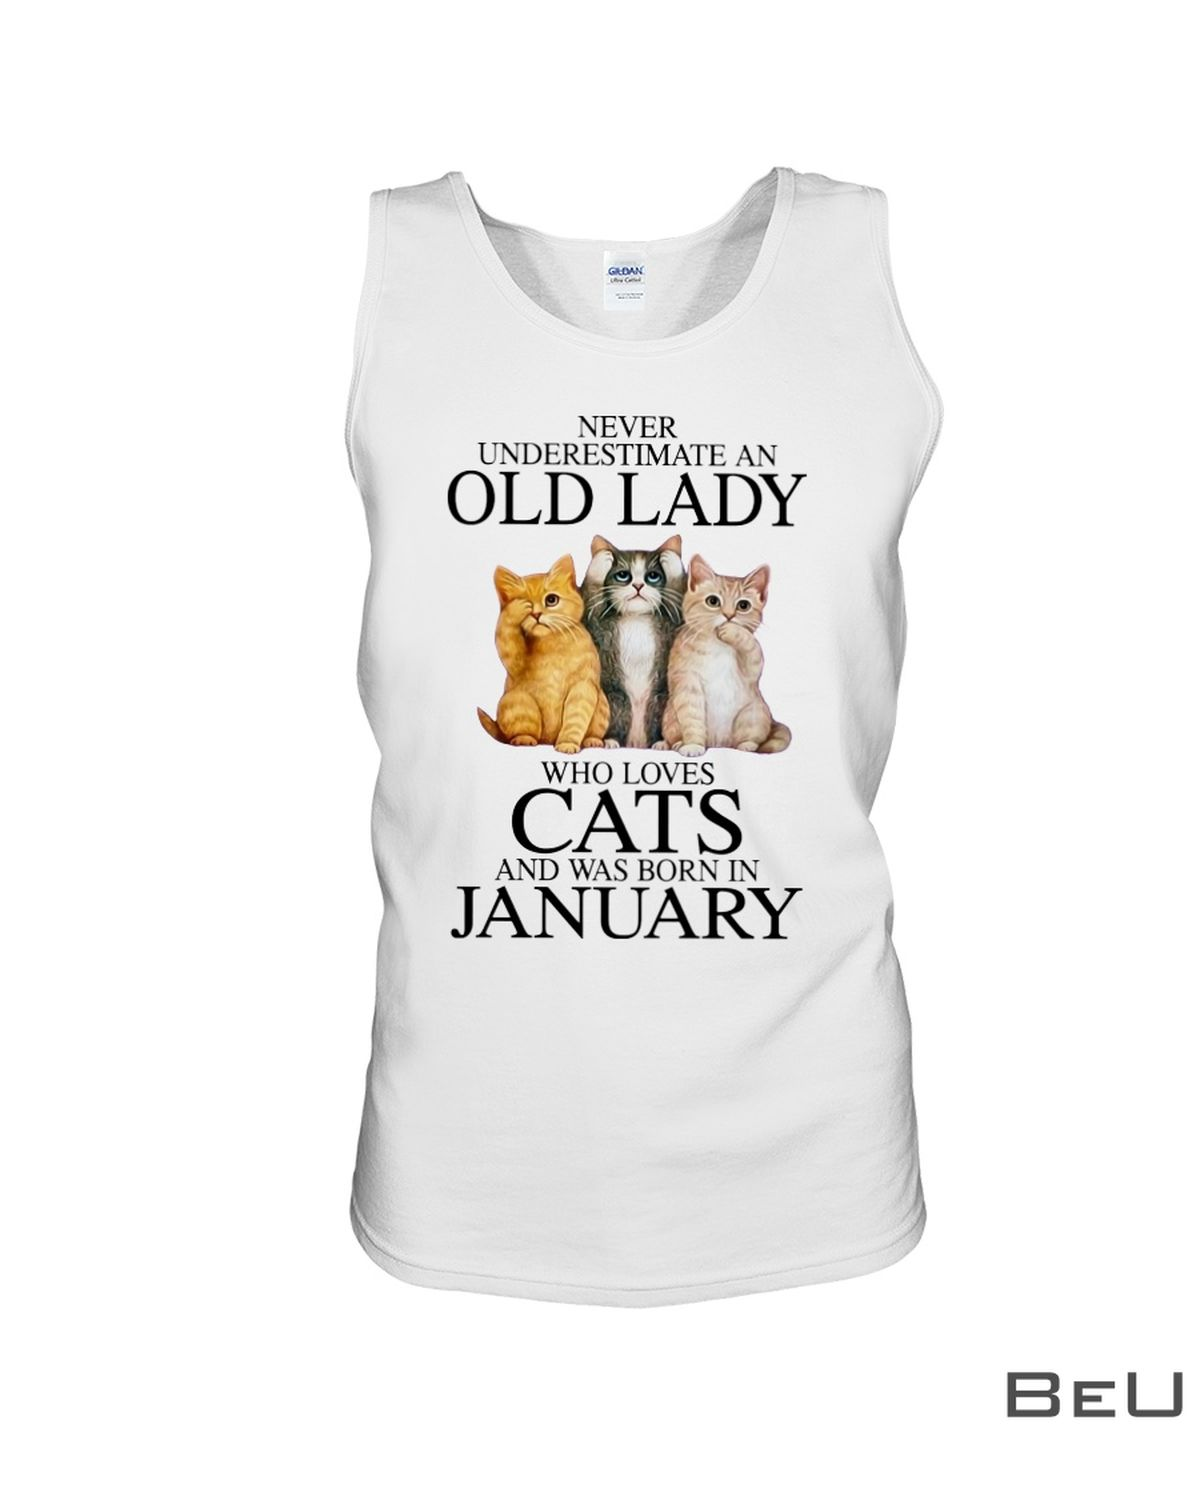 Never Underestimate A January Old Lady Who Loves Cats Shirtc